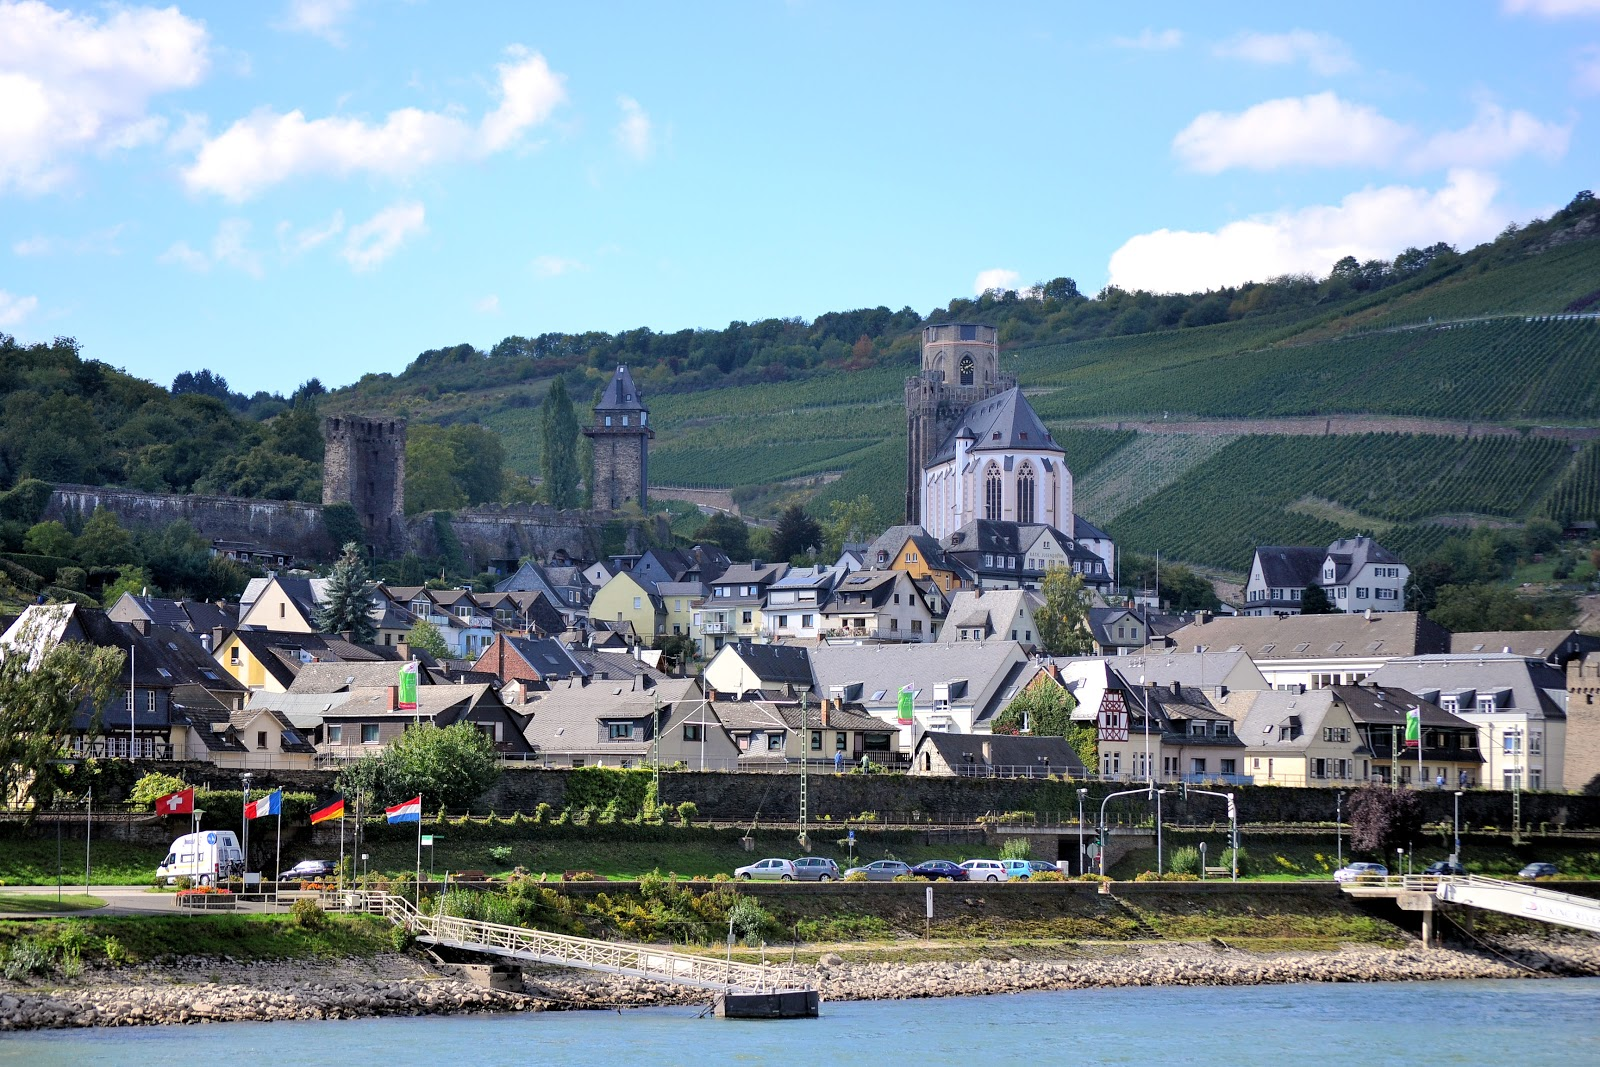 Oberwesel, Germany, lies on the banks of the Rhine River. St. Martin's Church rises alongside the vineyards in the background. Two of the original 21 watch towers stand to the left.